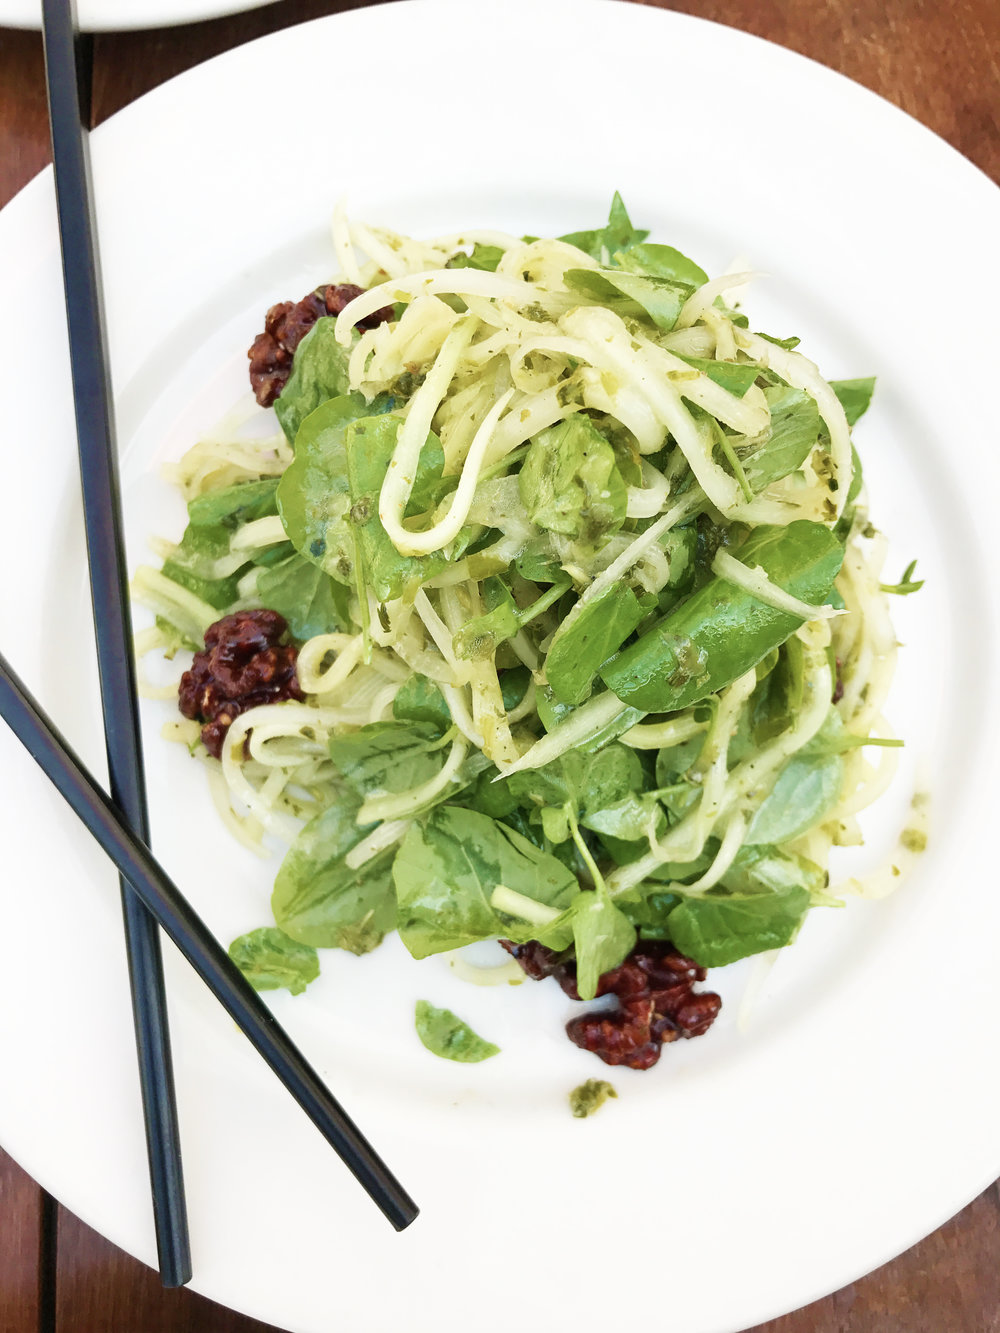 Green Papaya Salad with watercress and spice walnuts